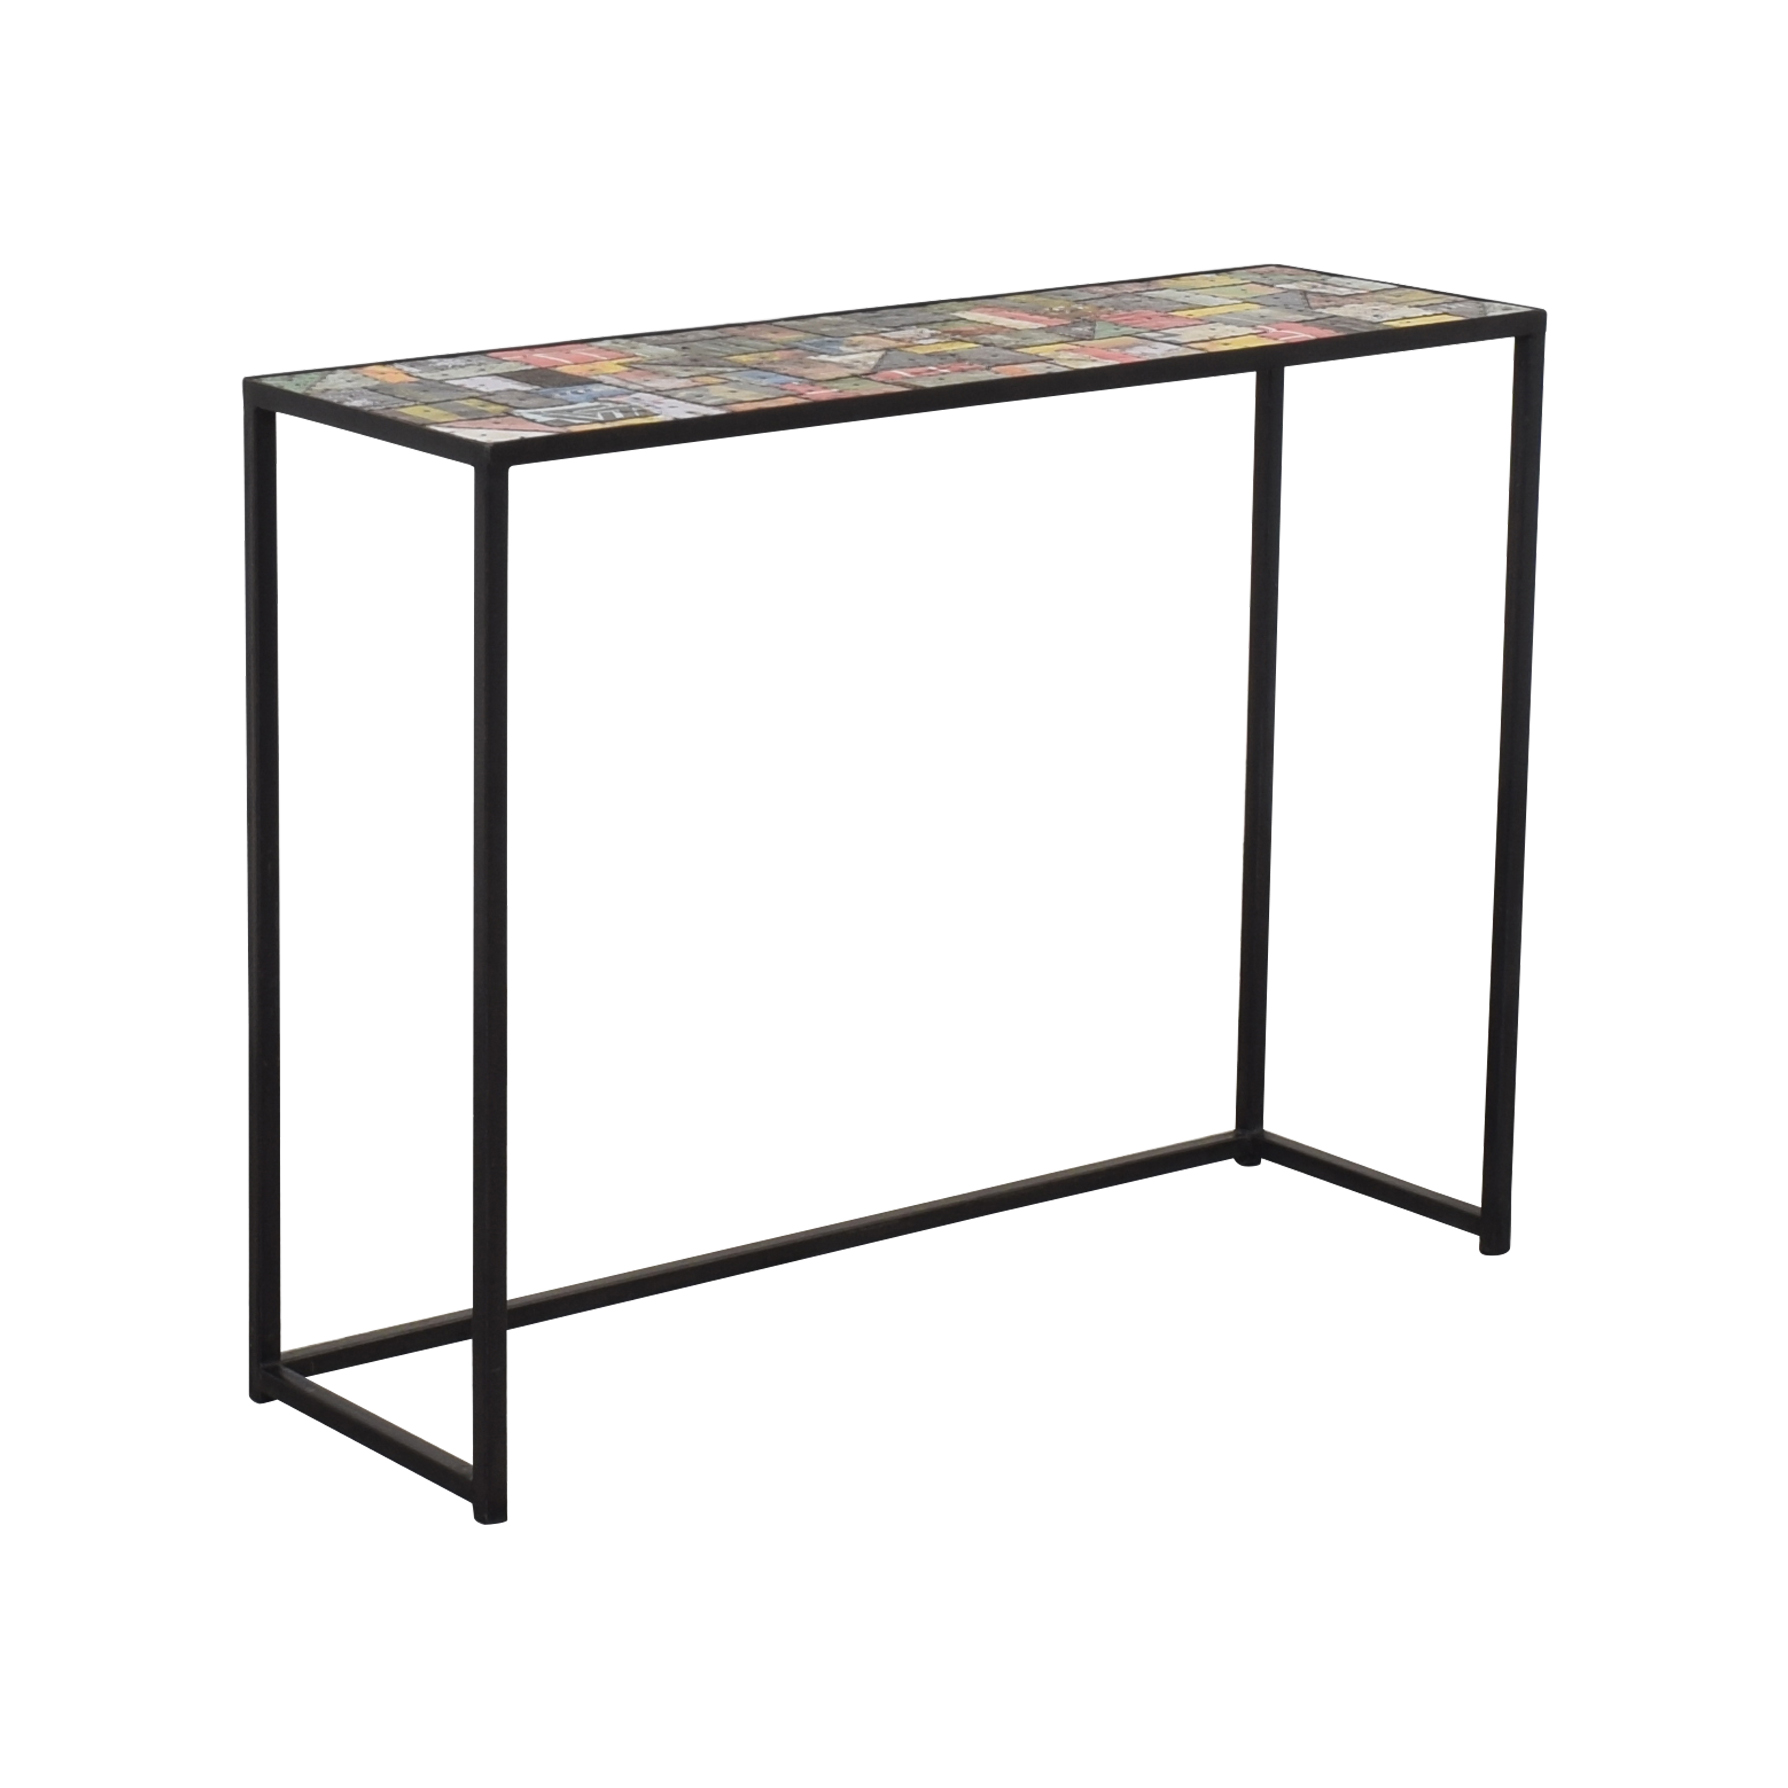 - 57% OFF - Industrial Accent Console Table / Tables